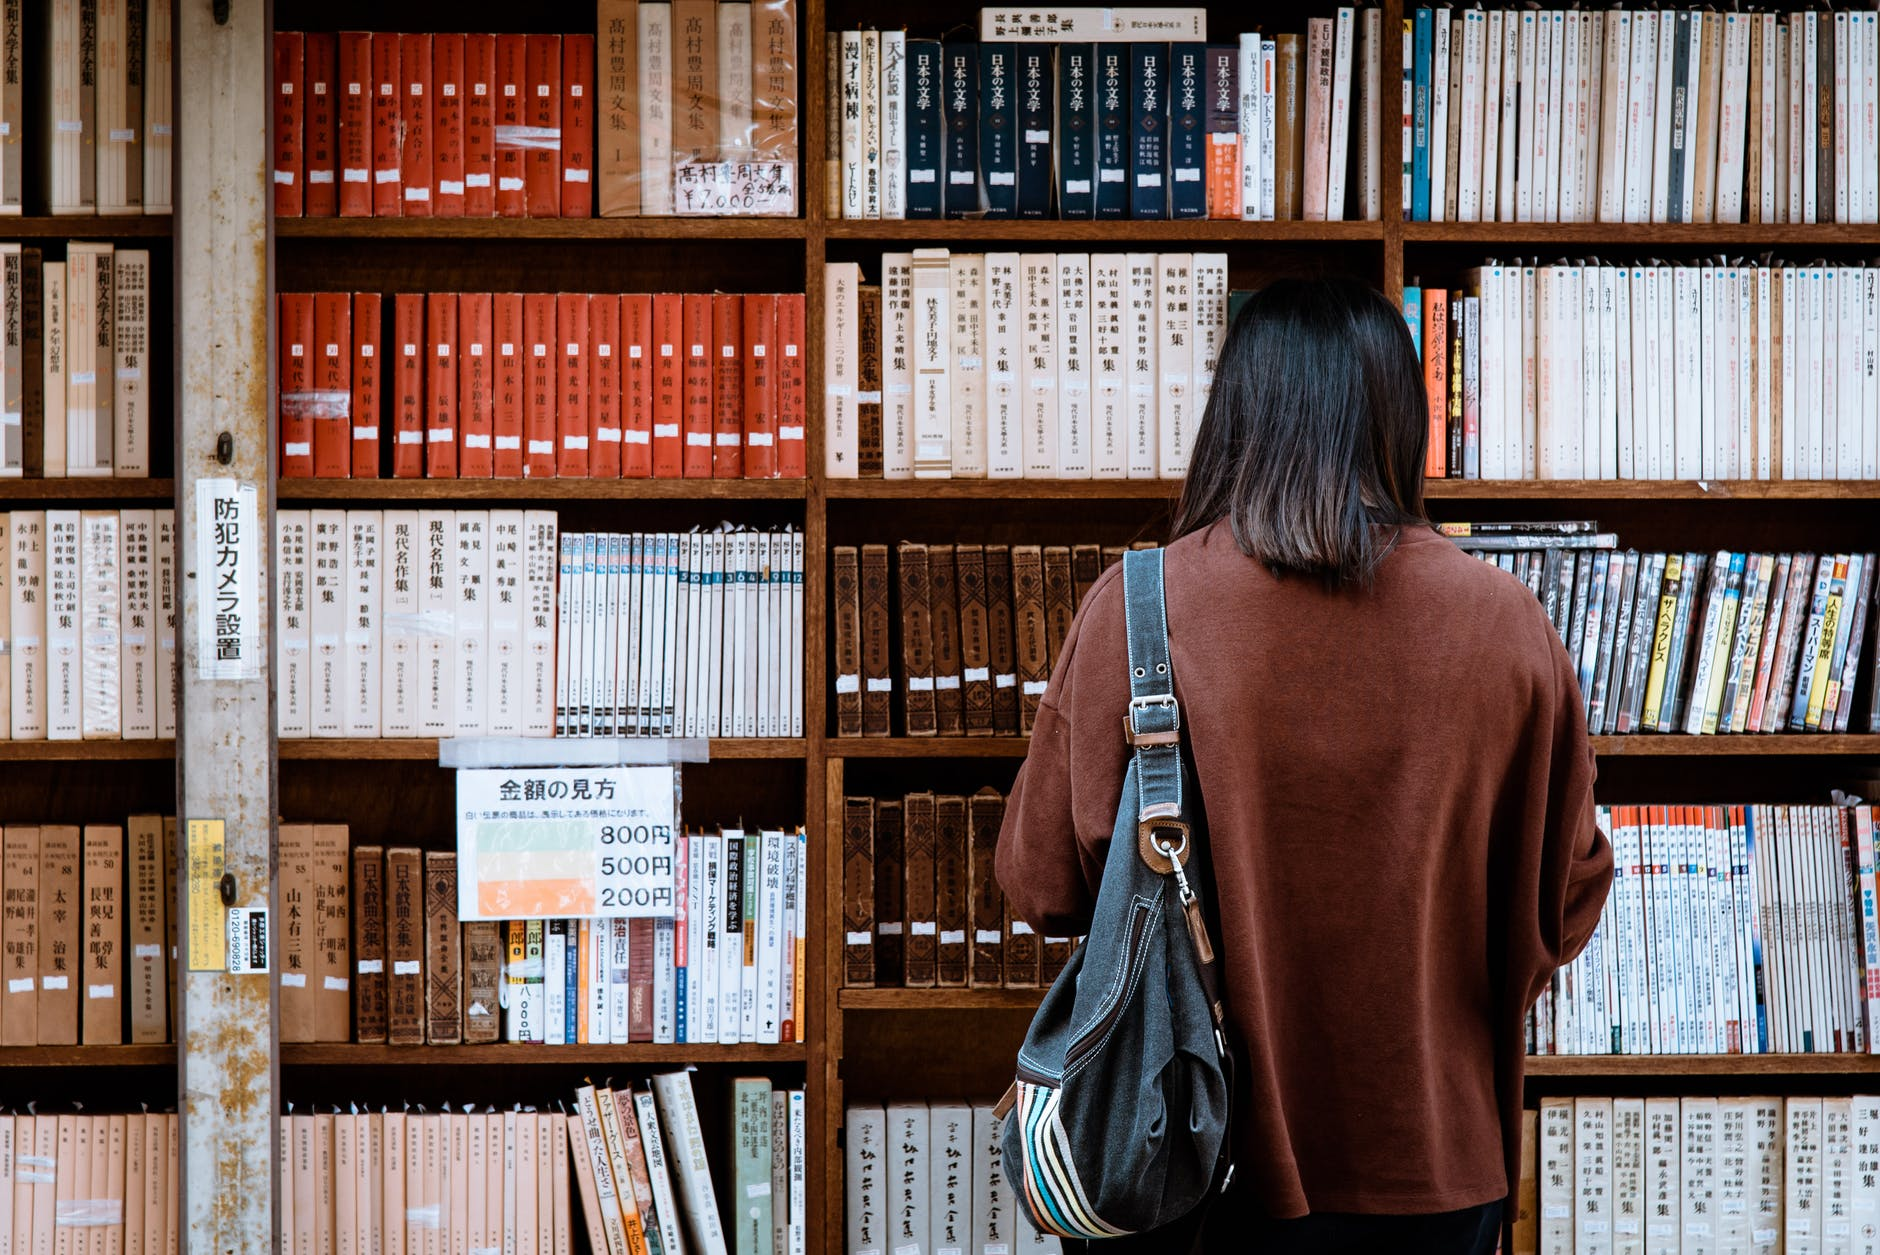 woman wearing brown shirt carrying black leather bag on front of library books